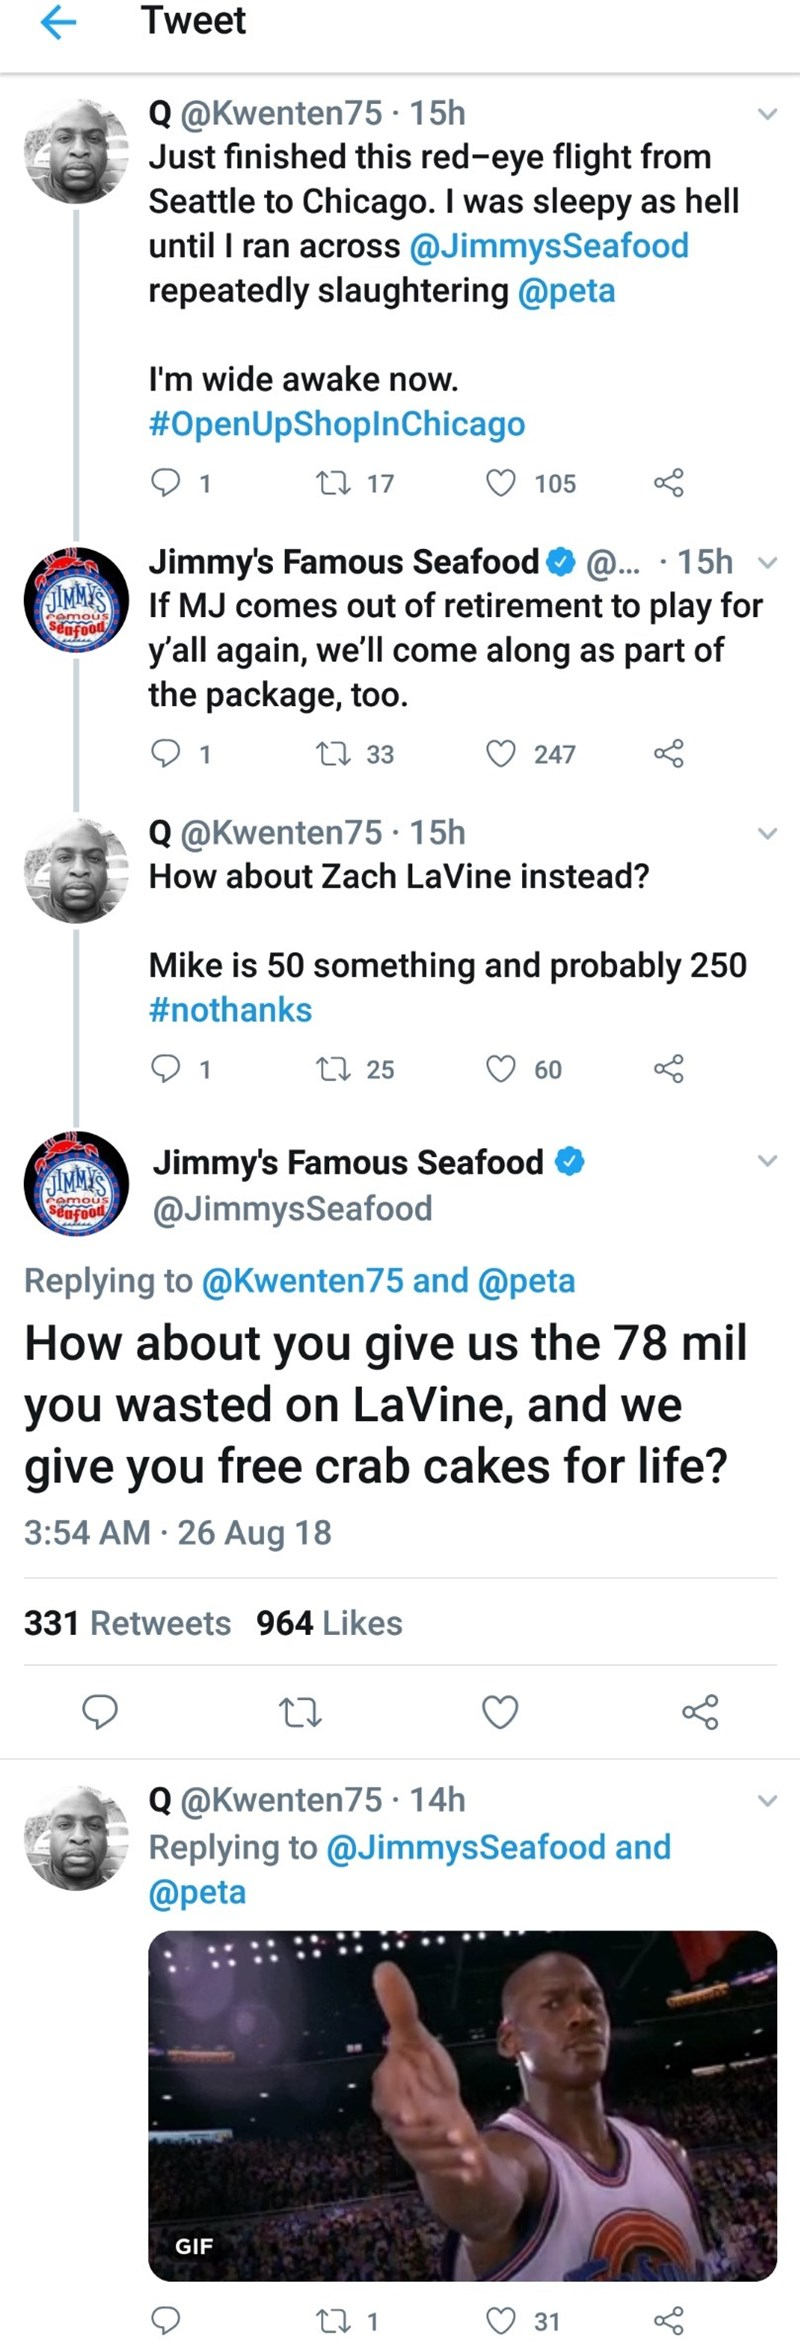 Jimmy's tweets taunts Twitter user about poor pro-basketball team choices